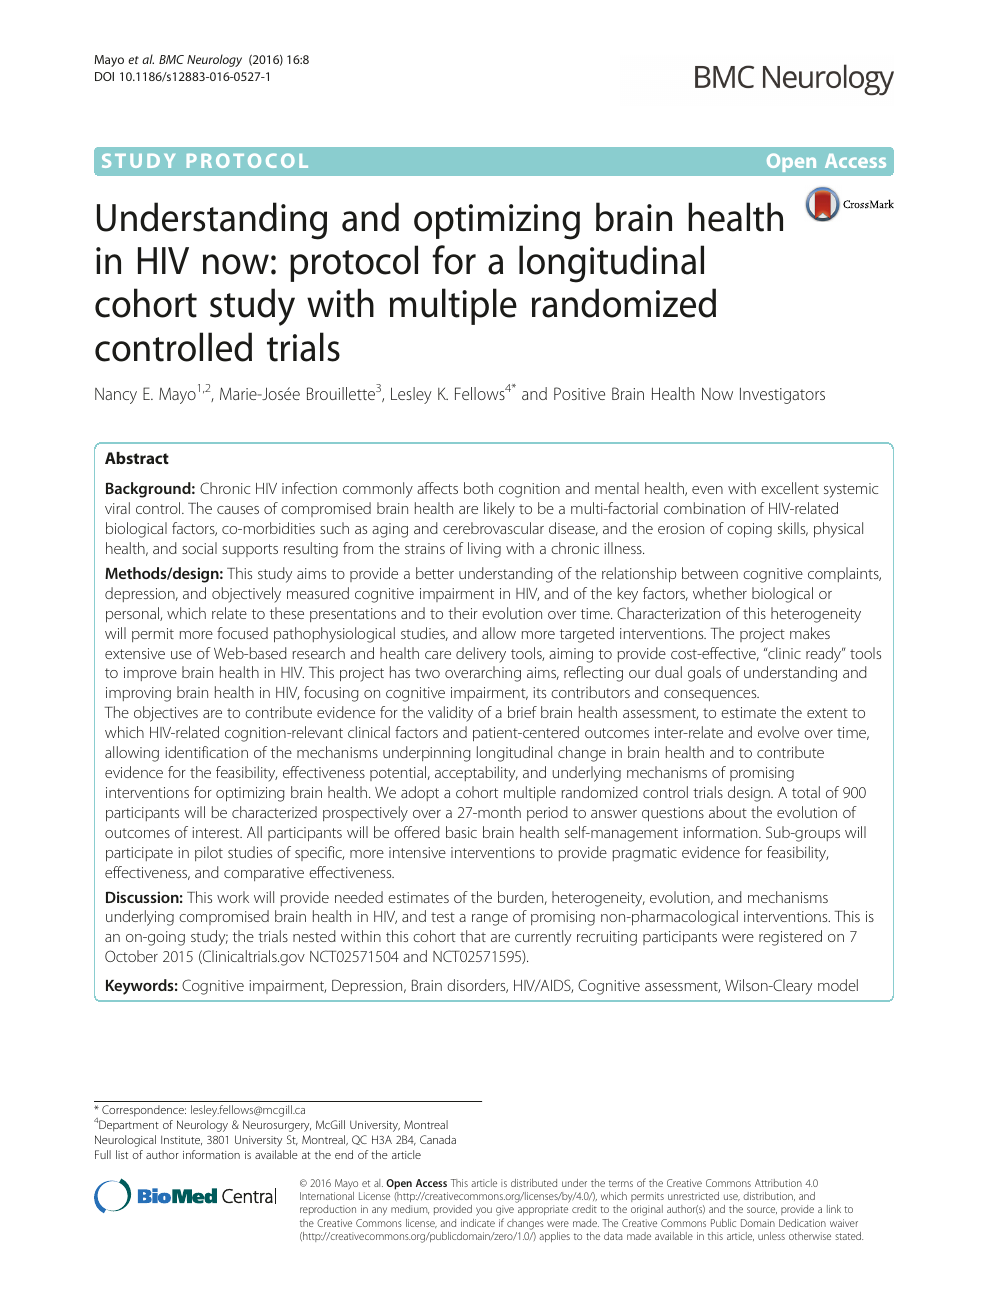 Understanding and optimizing brain health in HIV now: protocol for a